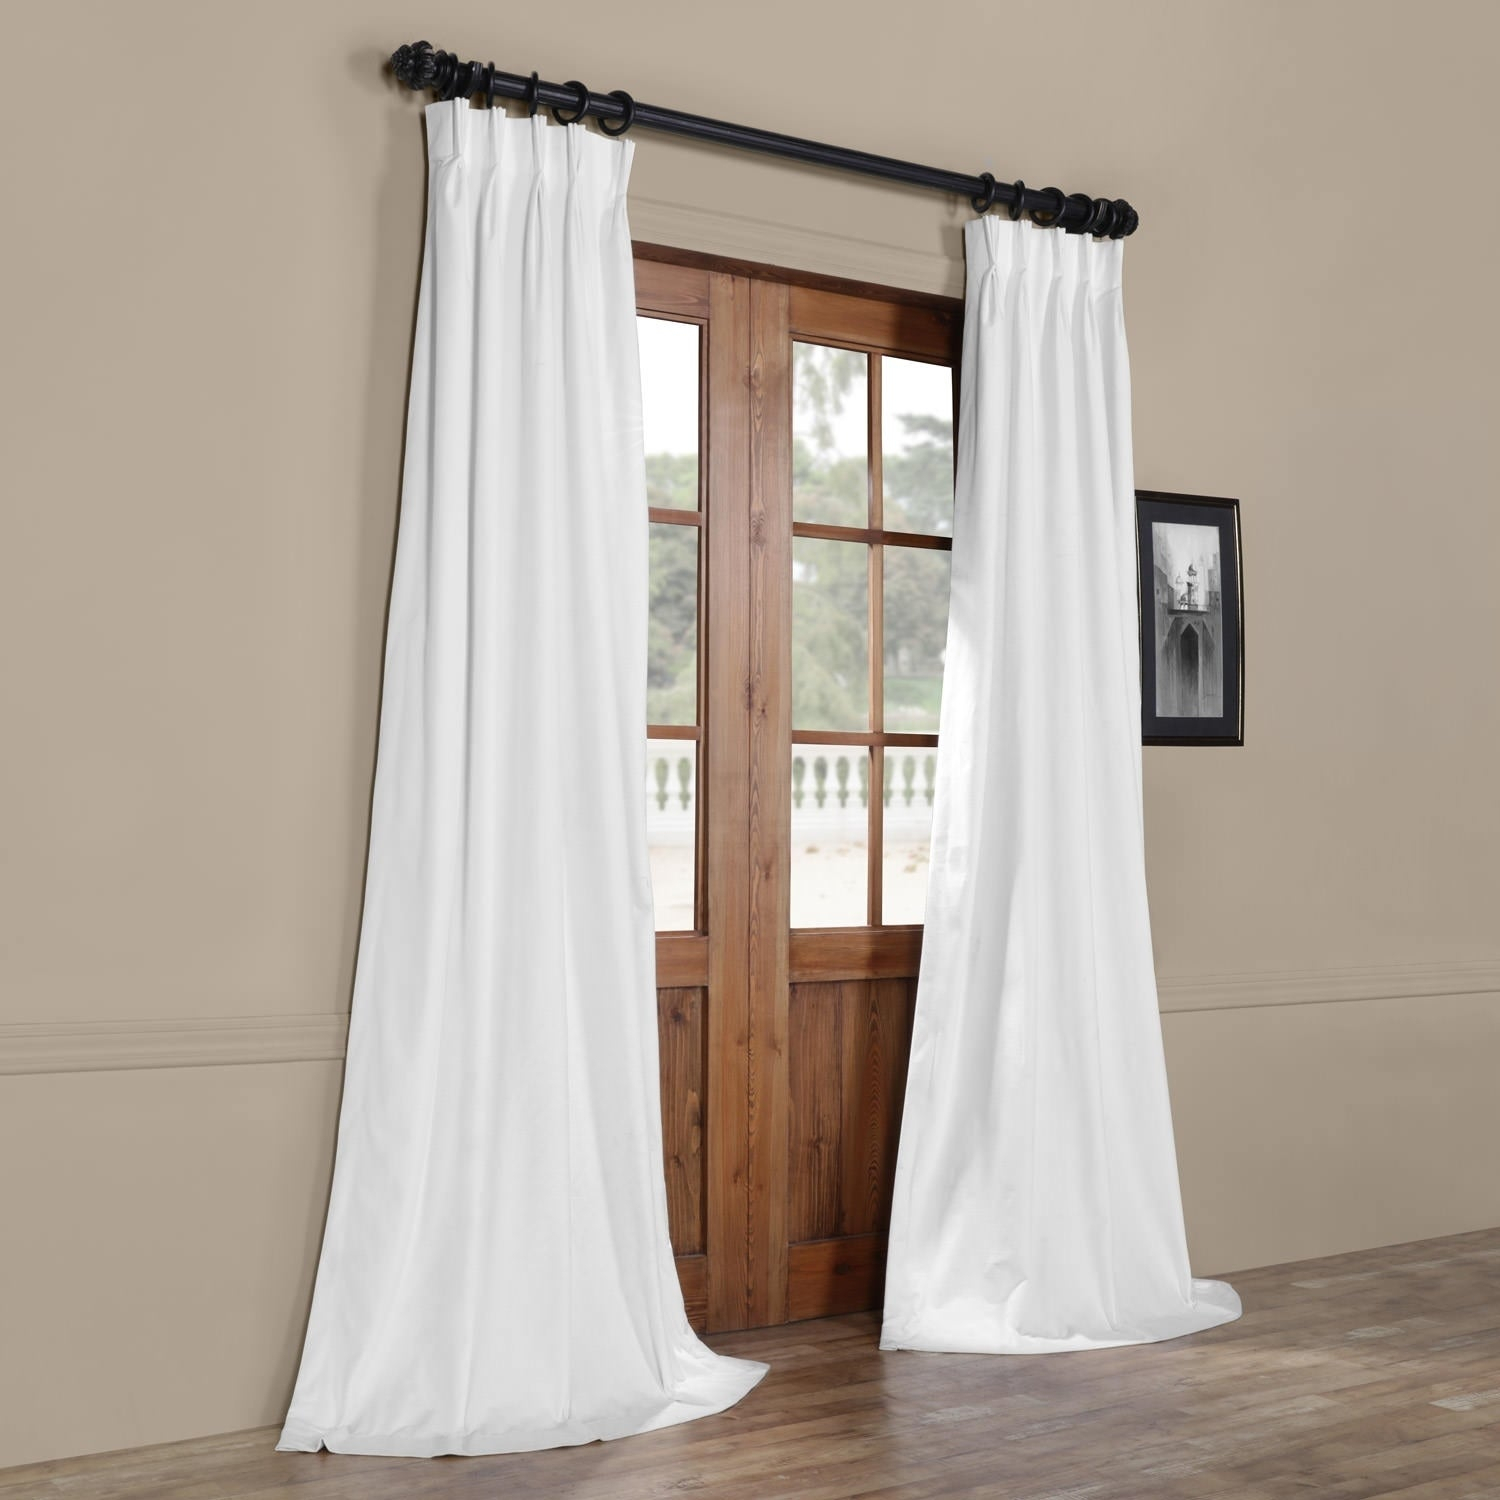 Exclusive Fabrics Signature Pinch Pleated Blackout Solid Velvet Curtain Panel With Regard To Signature Pinch Pleated Blackout Solid Velvet Curtain Panels (View 15 of 36)